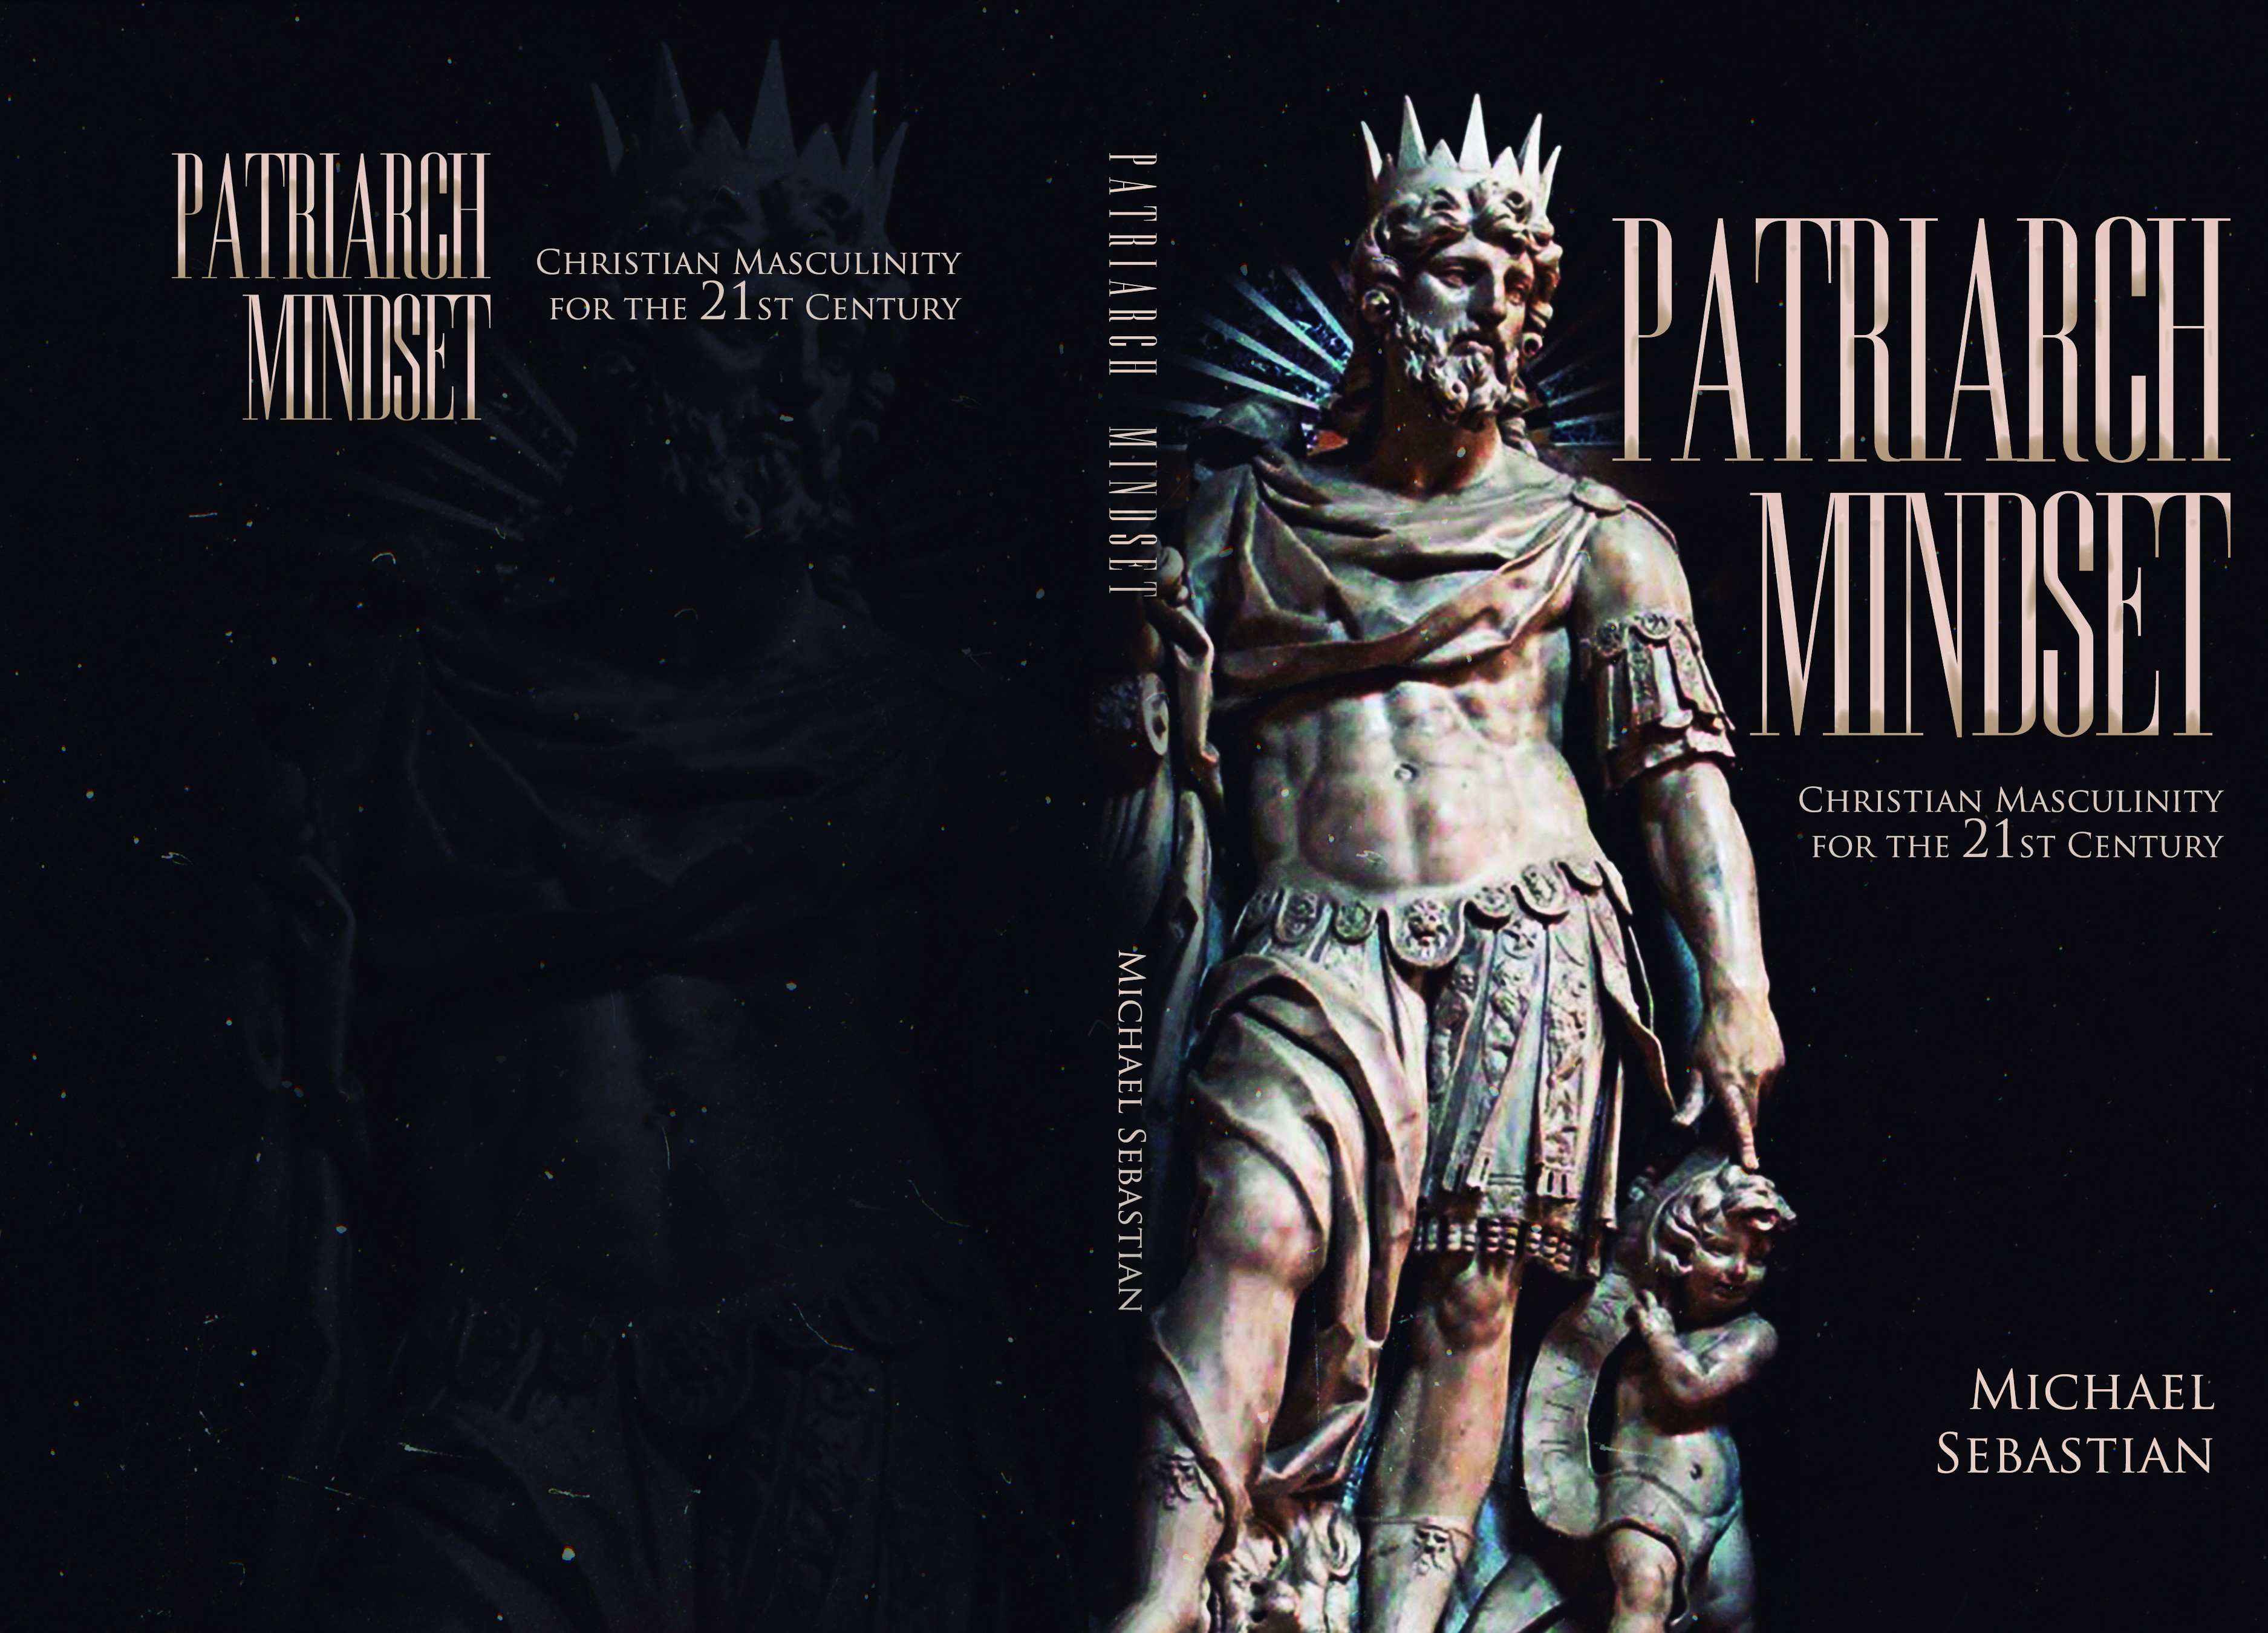 Book cover for Patriarch Mindset